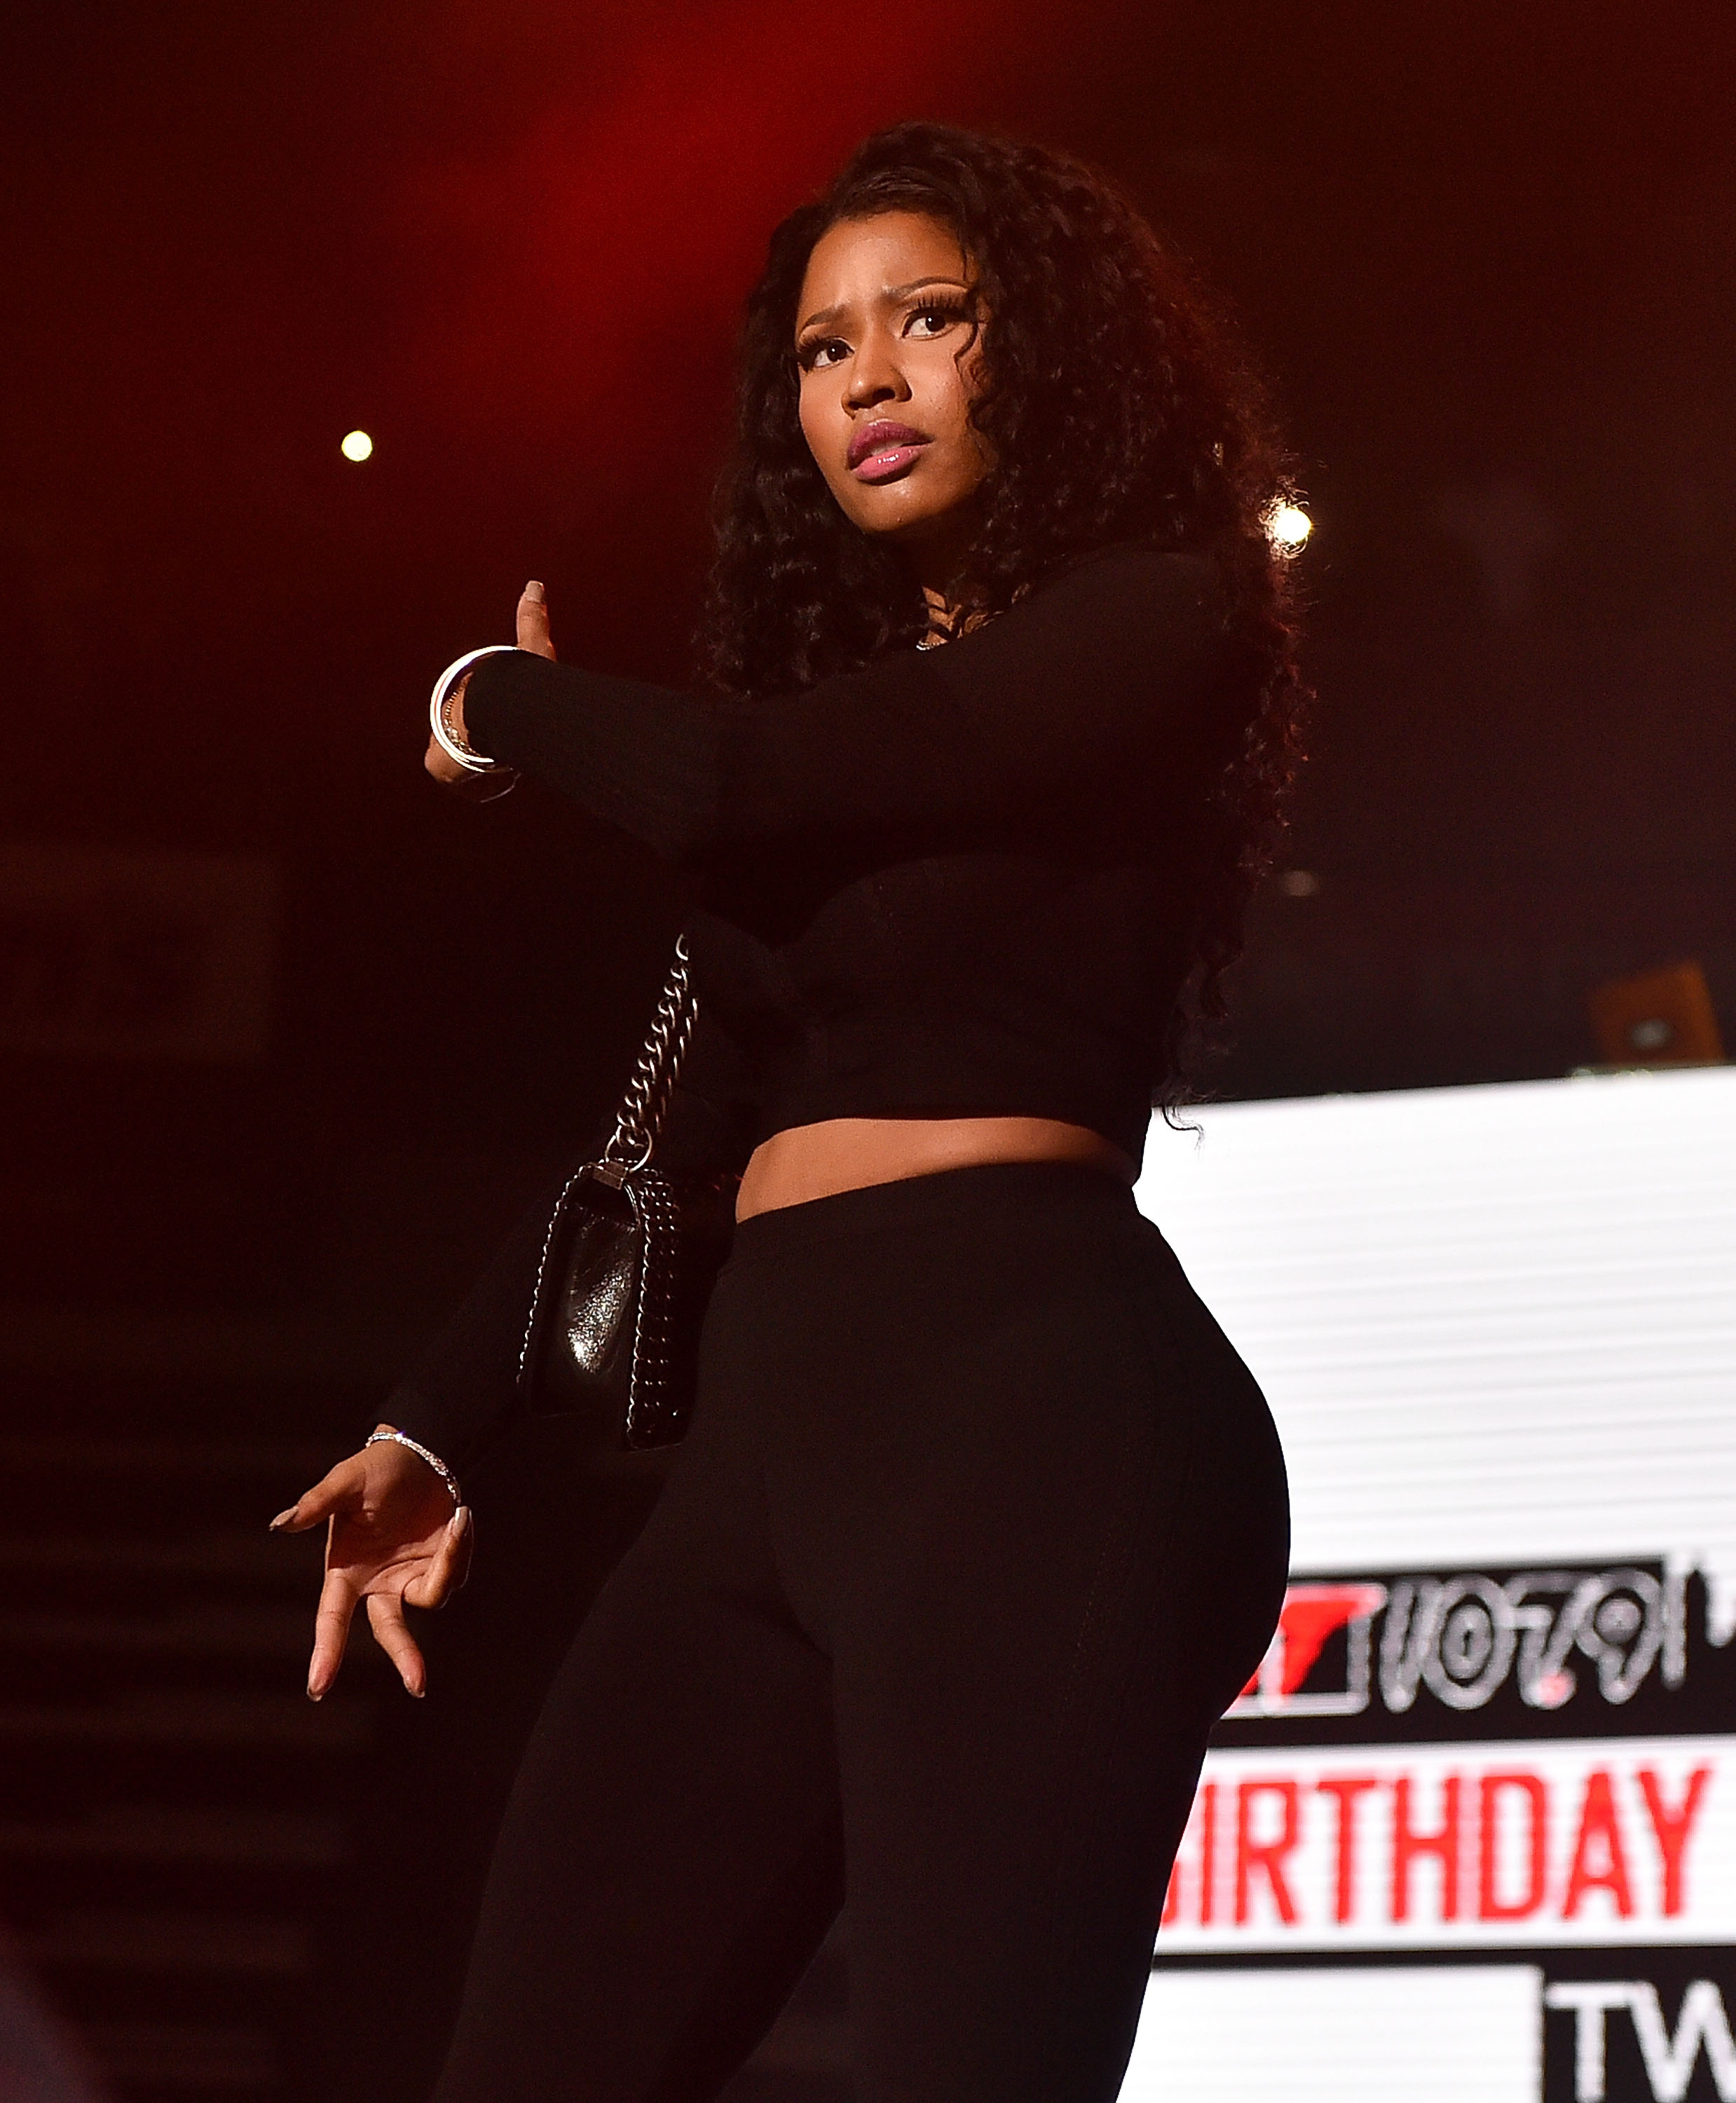 Hot 107.9 Birthday Bash Block Show